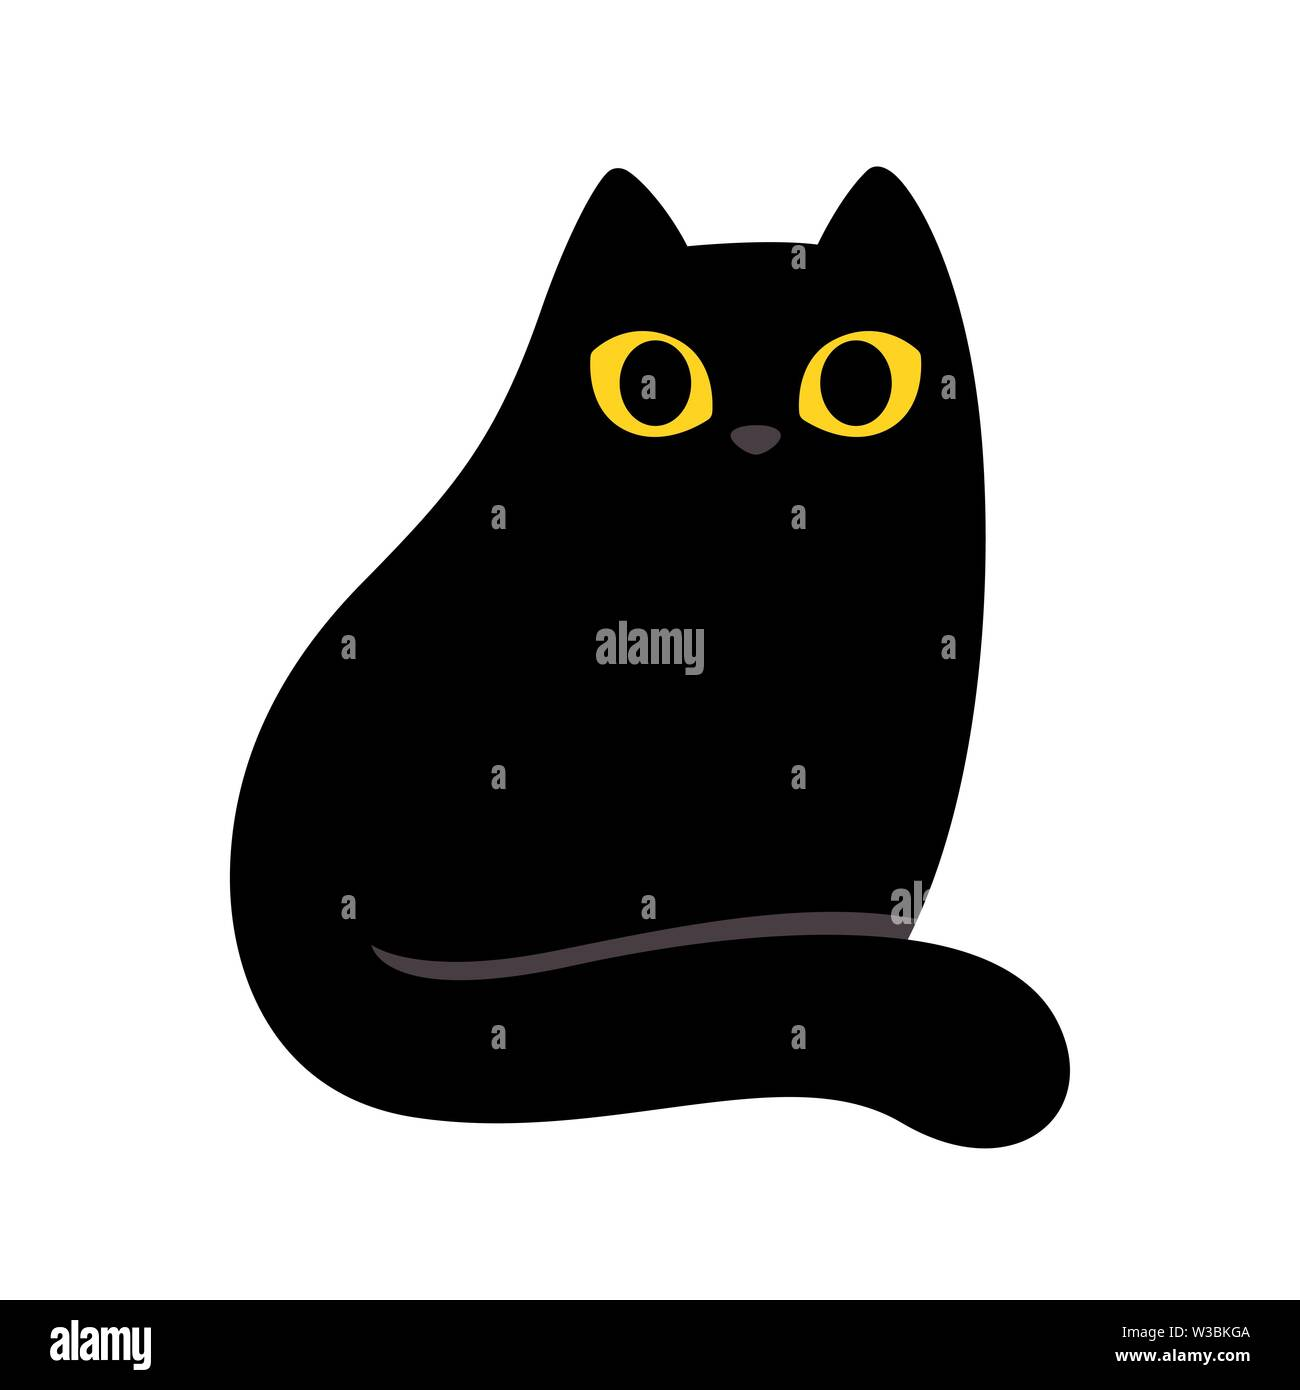 Cartoon Black Cat With Yellow Eyes Simple And Minimal Sitting Cat Drawing Cute Vector Illustration Stock Vector Image Art Alamy